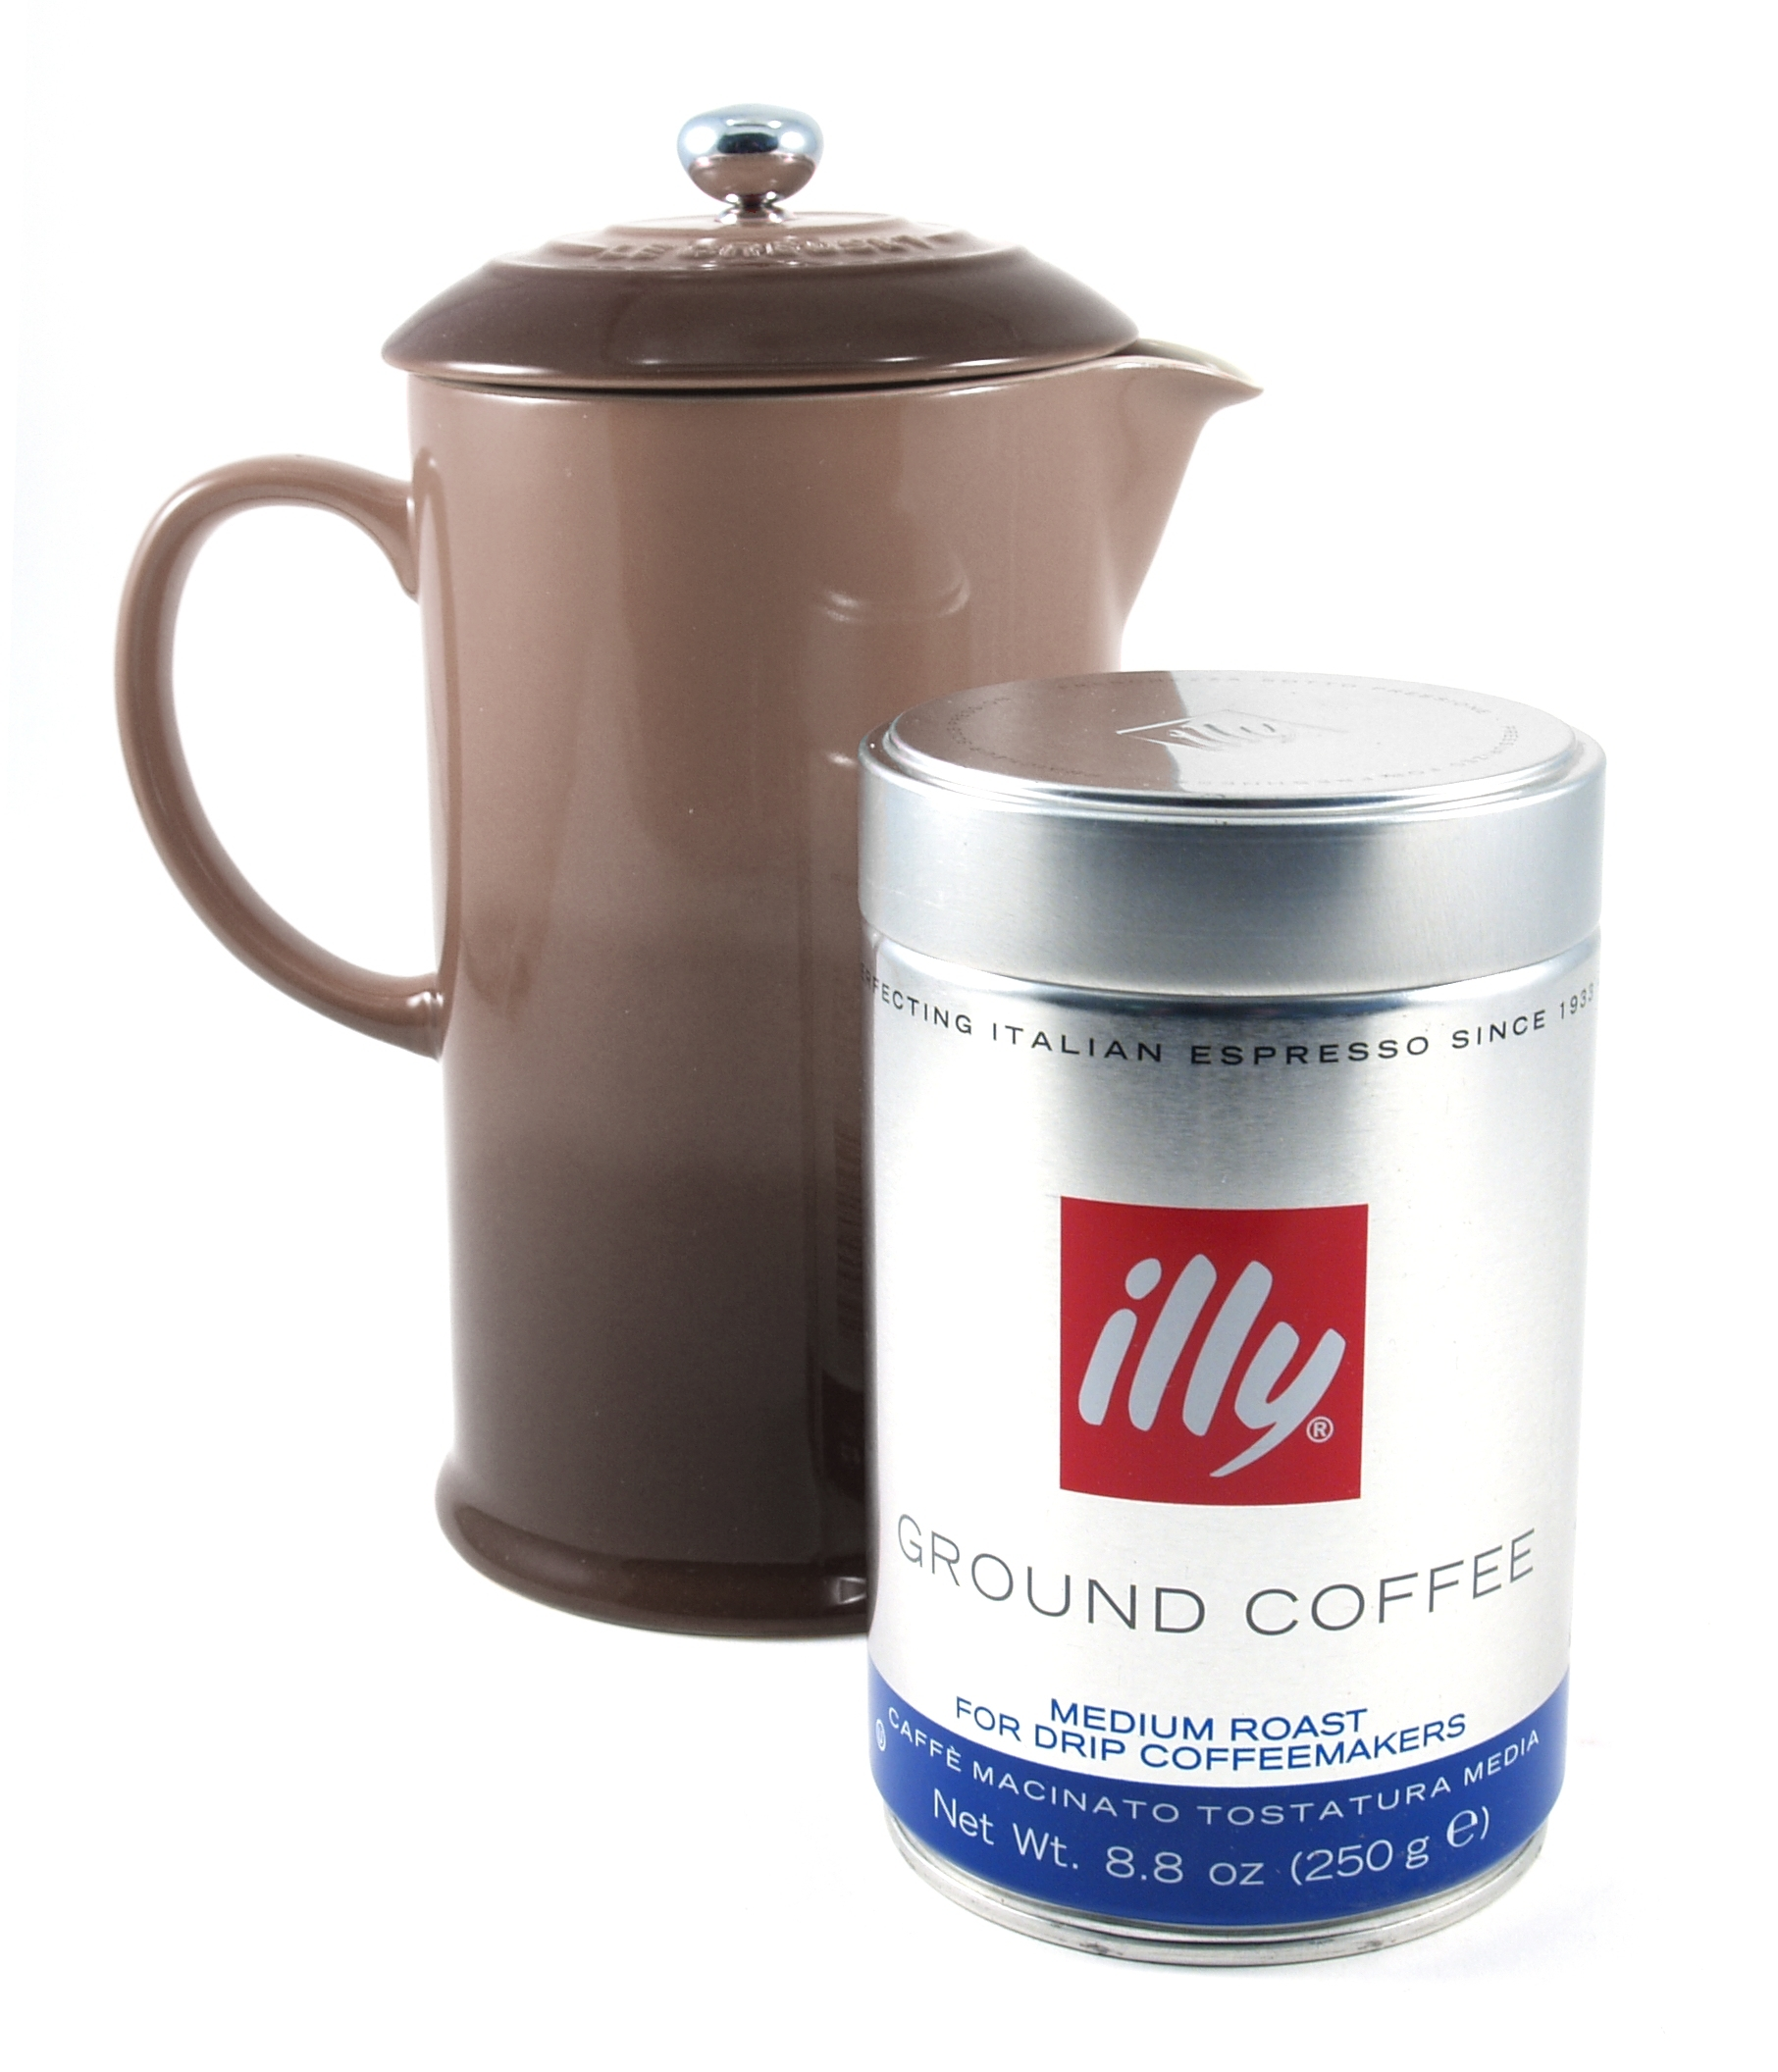 Le Creuset Truffle Stoneware French Press 1 Quart Coffee Maker with Illy Medium Roast Ground Coffee